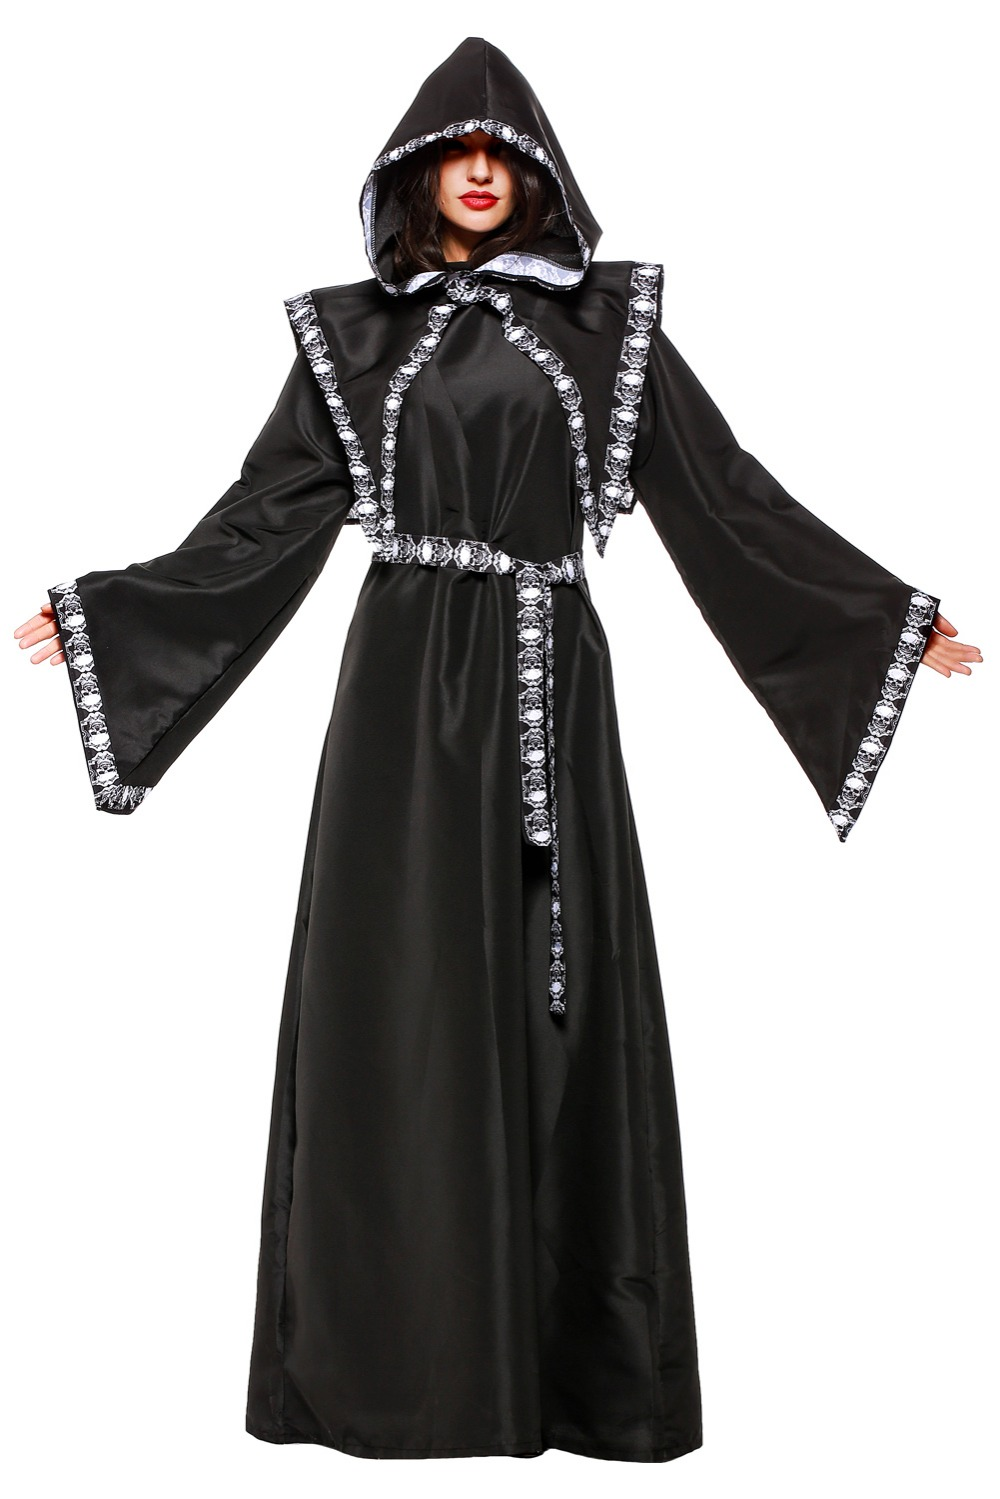 Halloween costumes for Adult men and women BLEACH Saturn Cosplay Costume Play dance party horror zombie wizard Costume Black